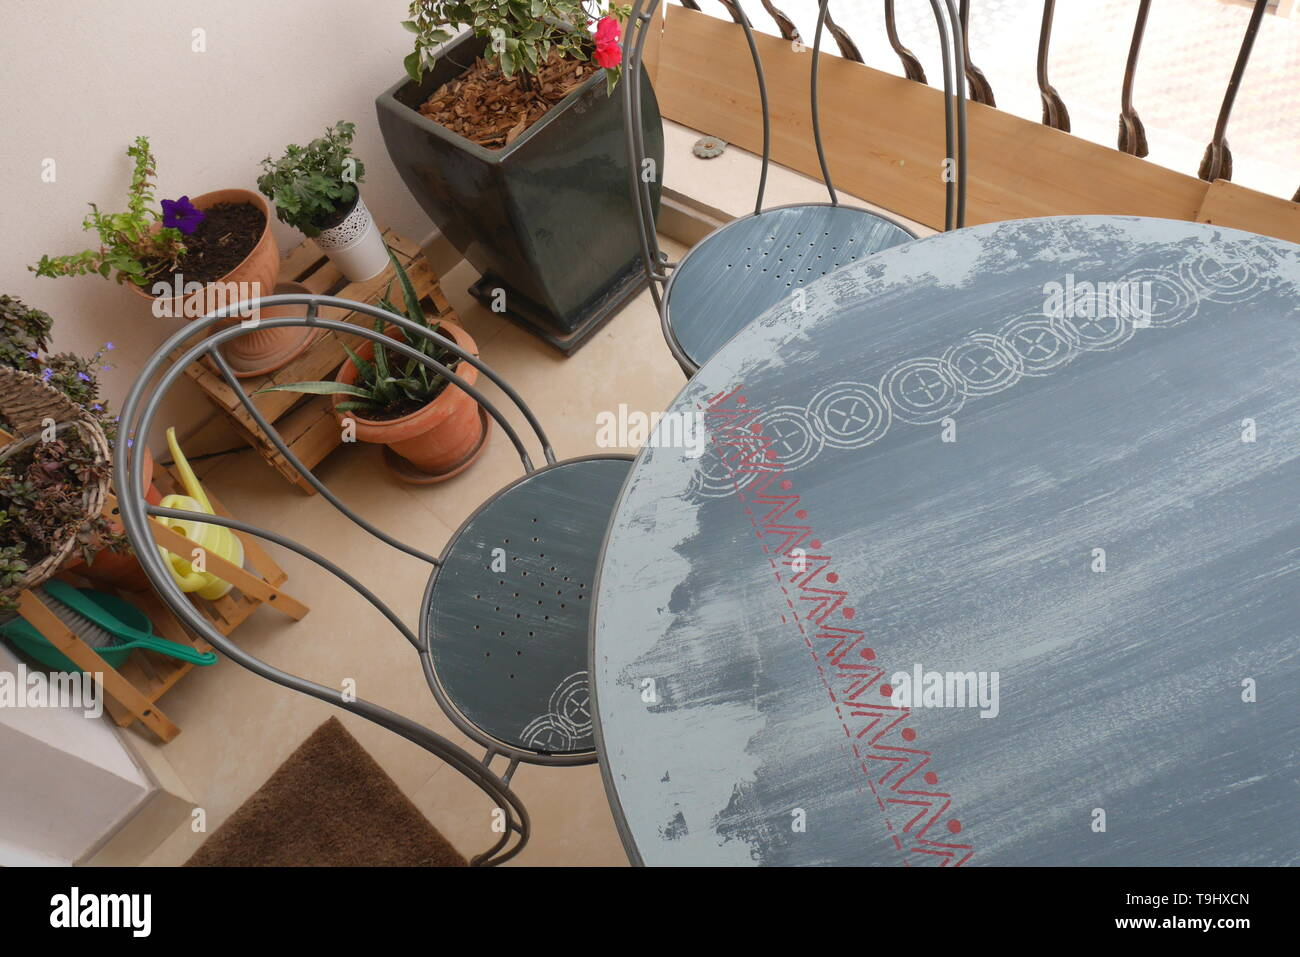 Blue chalk painted distressed wood table and two chairs on a balcony, Kingdom of Bahrain - Stock Image